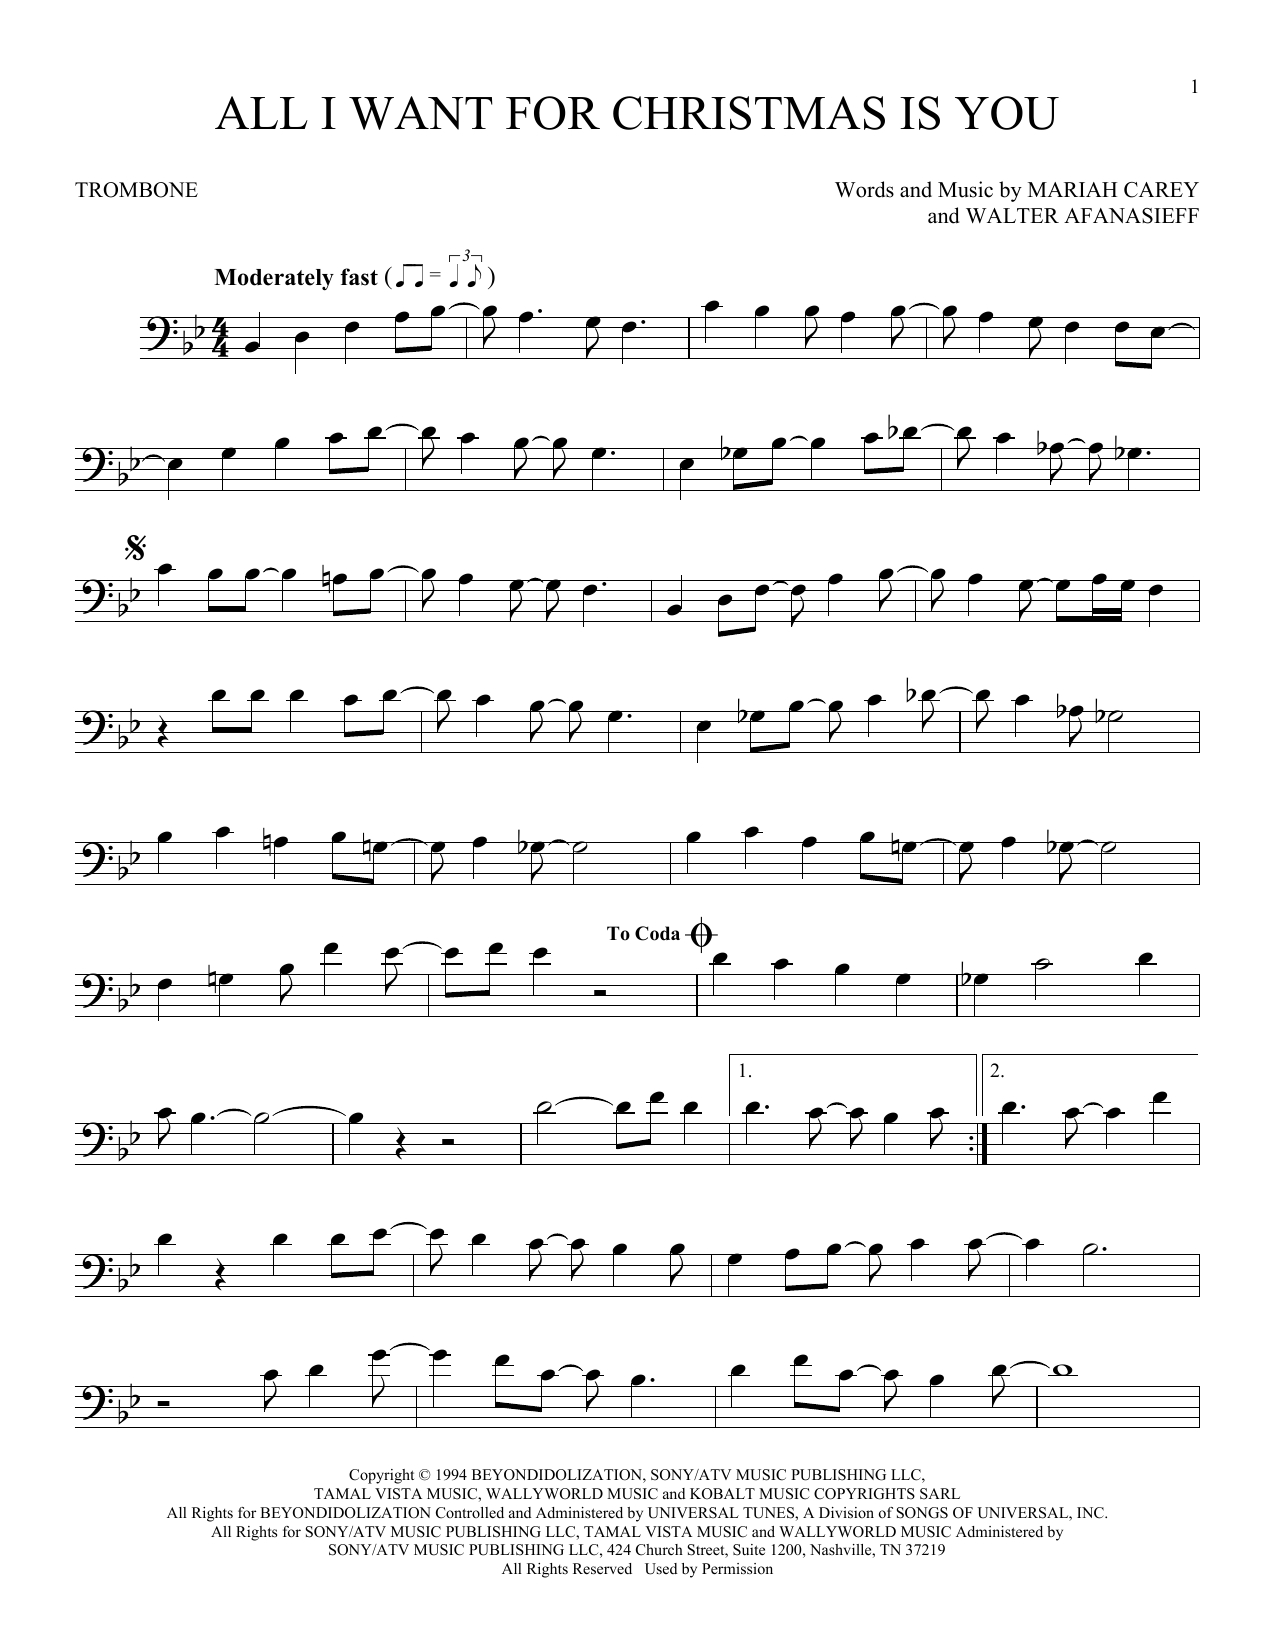 70 Melodious Christmas Piano Sheet Music | Kittybabylove - Free Printable Christmas Sheet Music For Piano